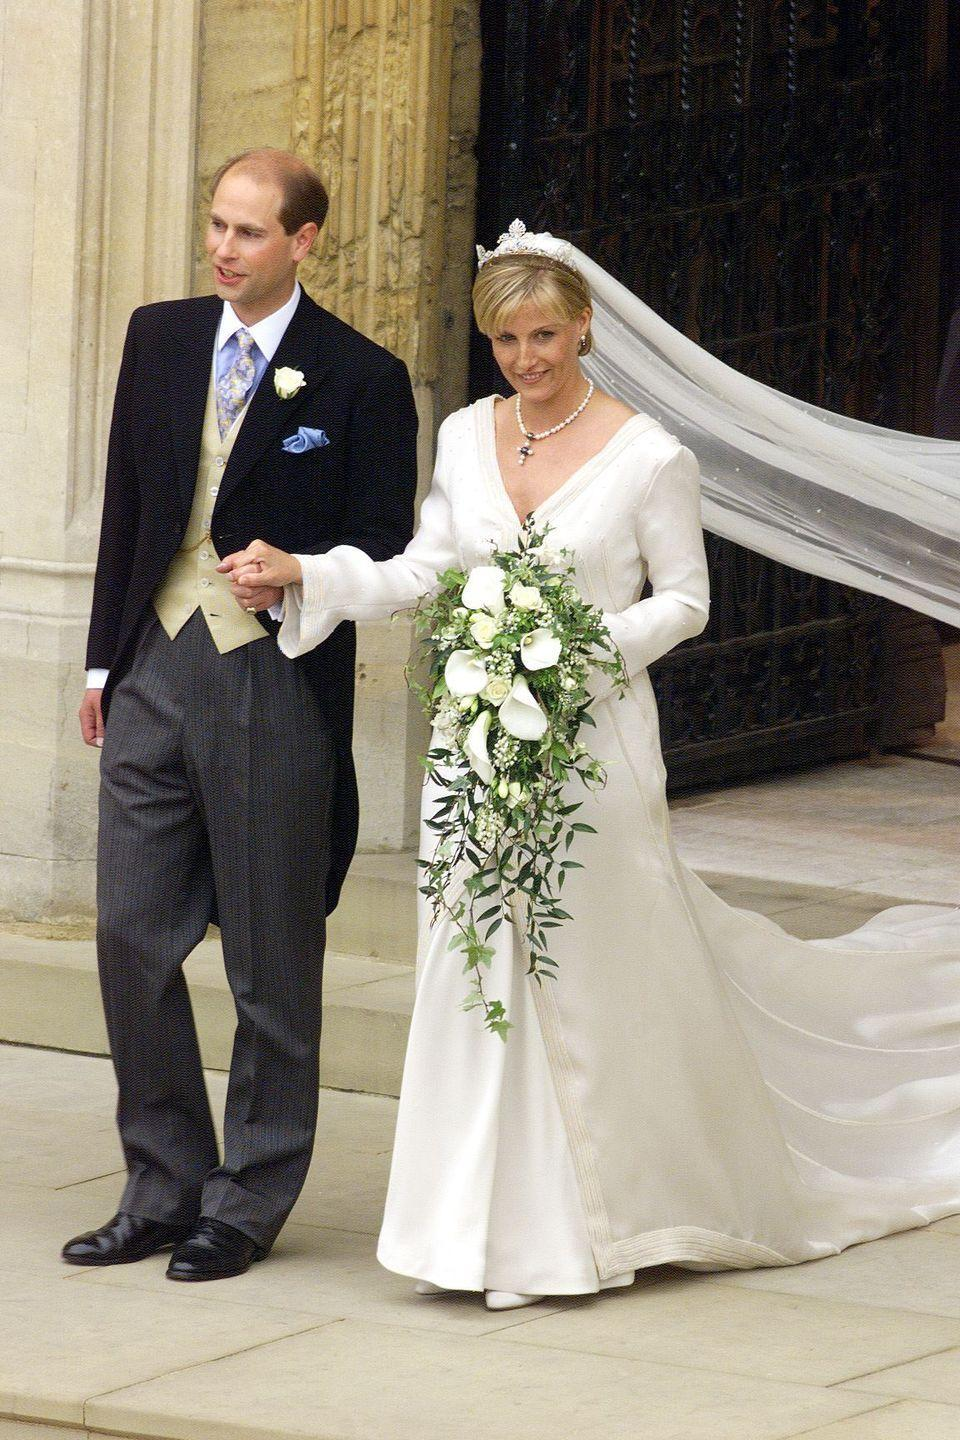 """<p>On her wedding day, Sophie wore a classic v-neck gown by Samantha Shaw. </p><p><a class=""""link rapid-noclick-resp"""" href=""""https://www.townandcountrymag.com/the-scene/weddings/g15836640/best-royal-wedding-dresses/"""" rel=""""nofollow noopener"""" target=""""_blank"""" data-ylk=""""slk:See 30 Other Iconic Royal Wedding Dresses"""">See 30 Other Iconic Royal Wedding Dresses</a><br></p>"""